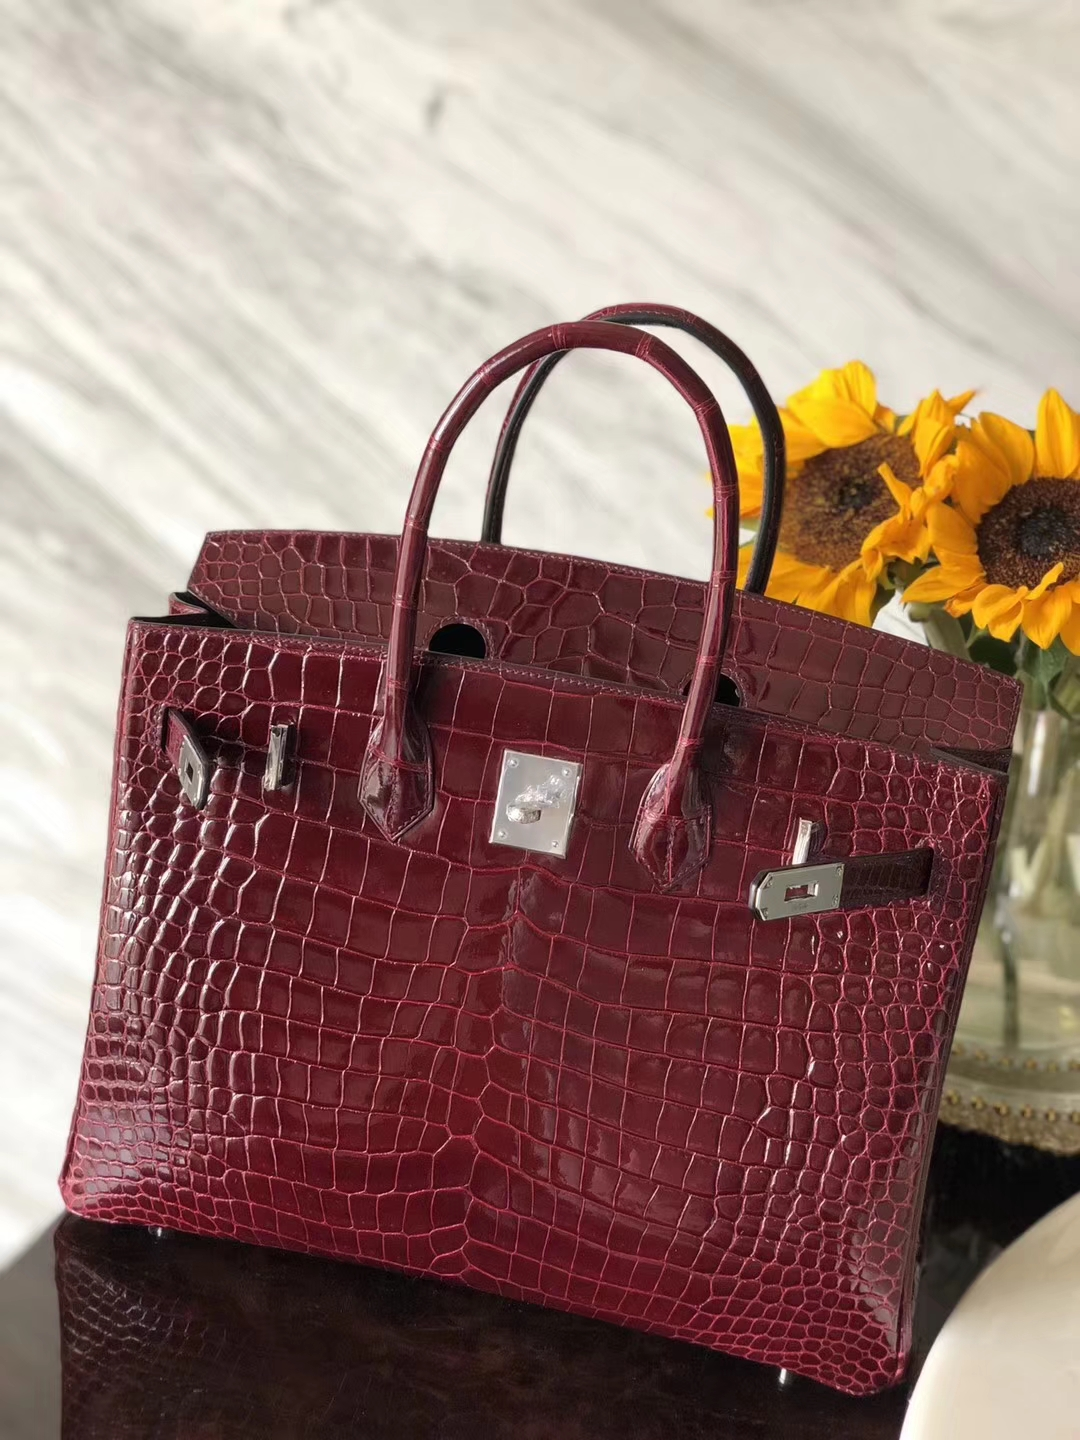 Discount Hermes F5 Bourgogne Red Shiny Crocodile Leather Birkin35CM Bag